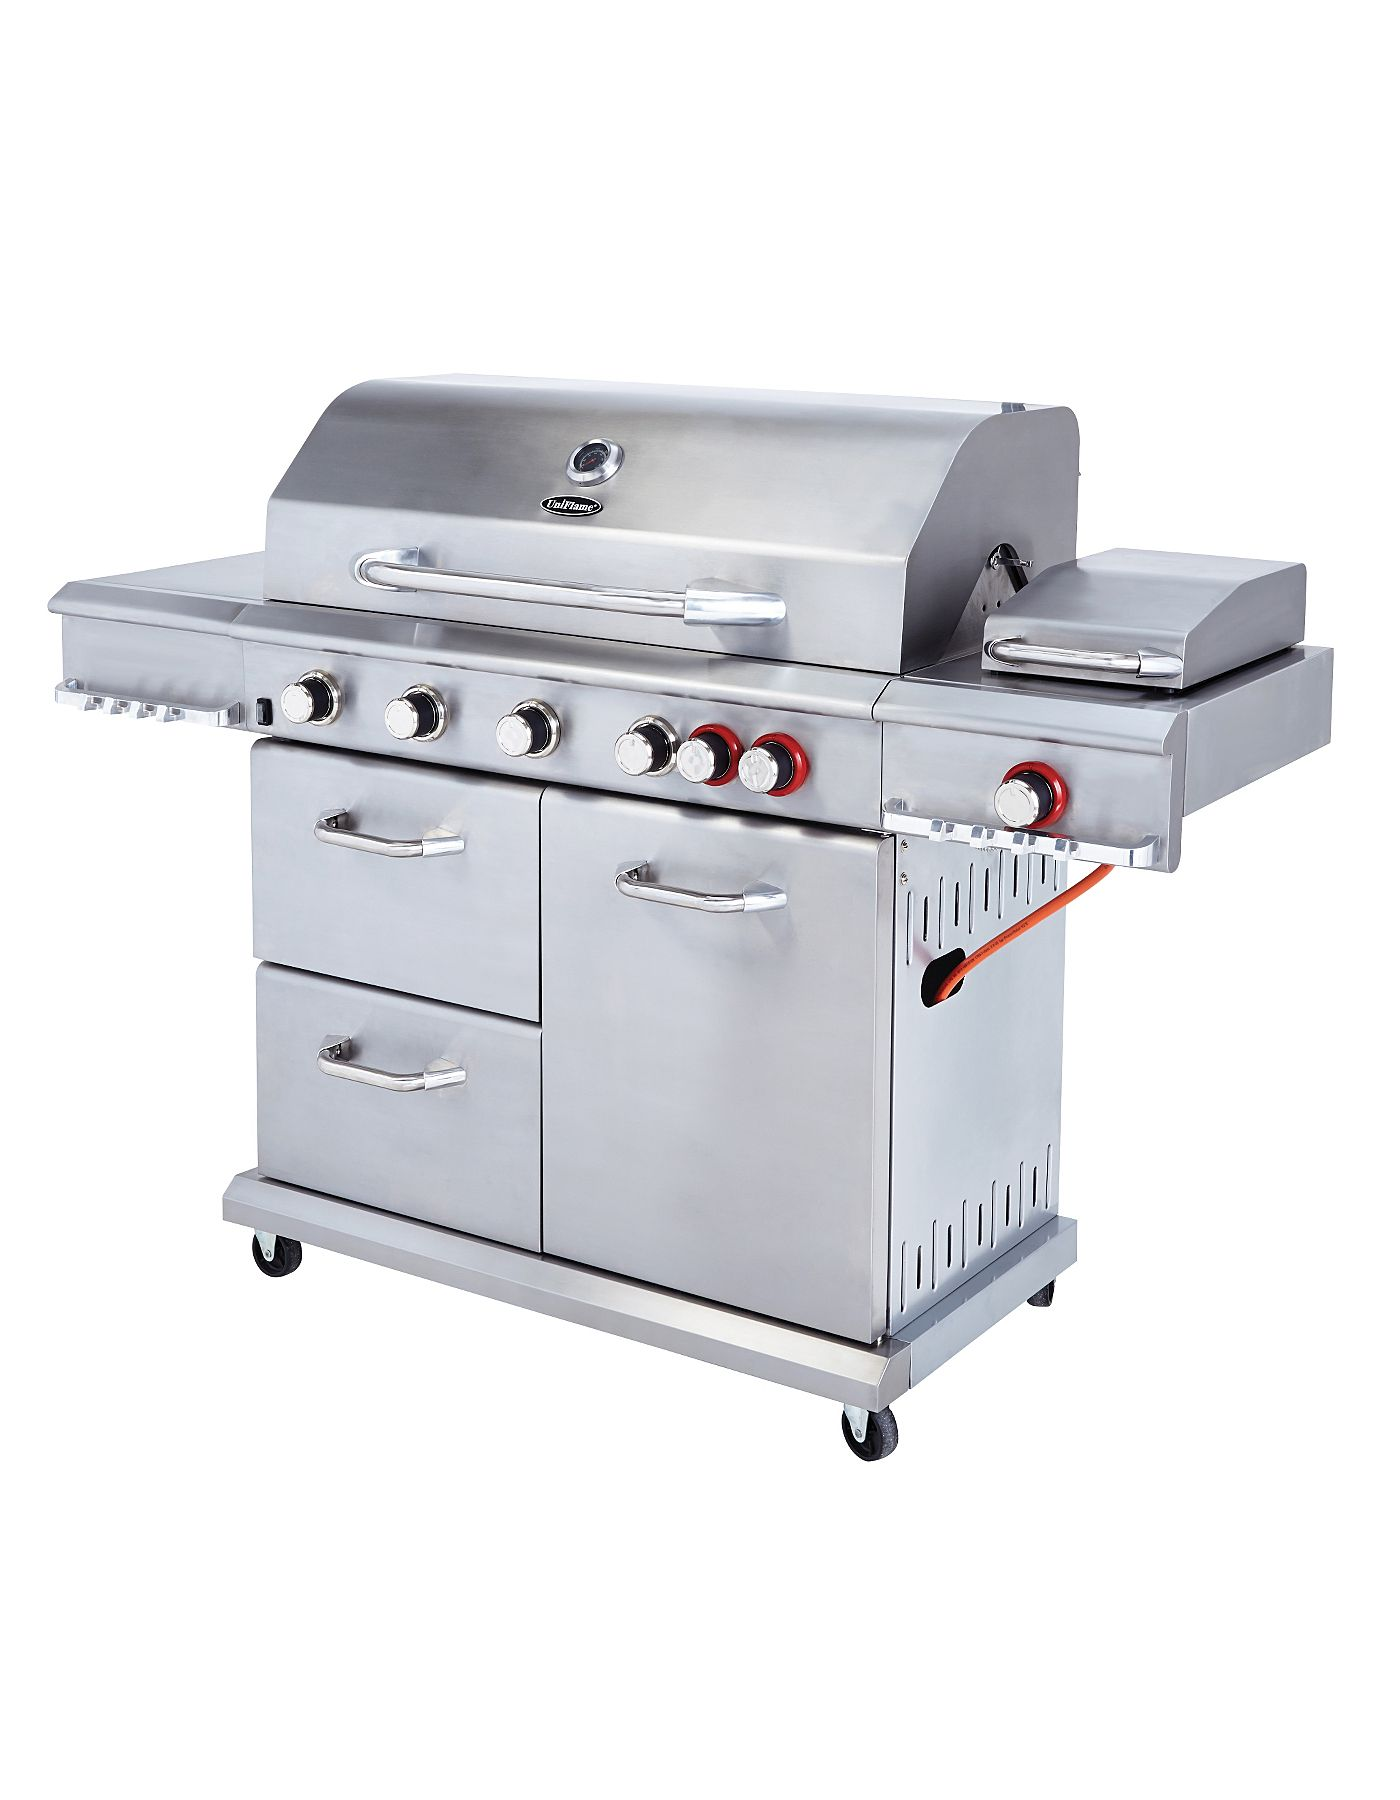 uniflame dual sear 6 burner side gas grill bbqs. Black Bedroom Furniture Sets. Home Design Ideas